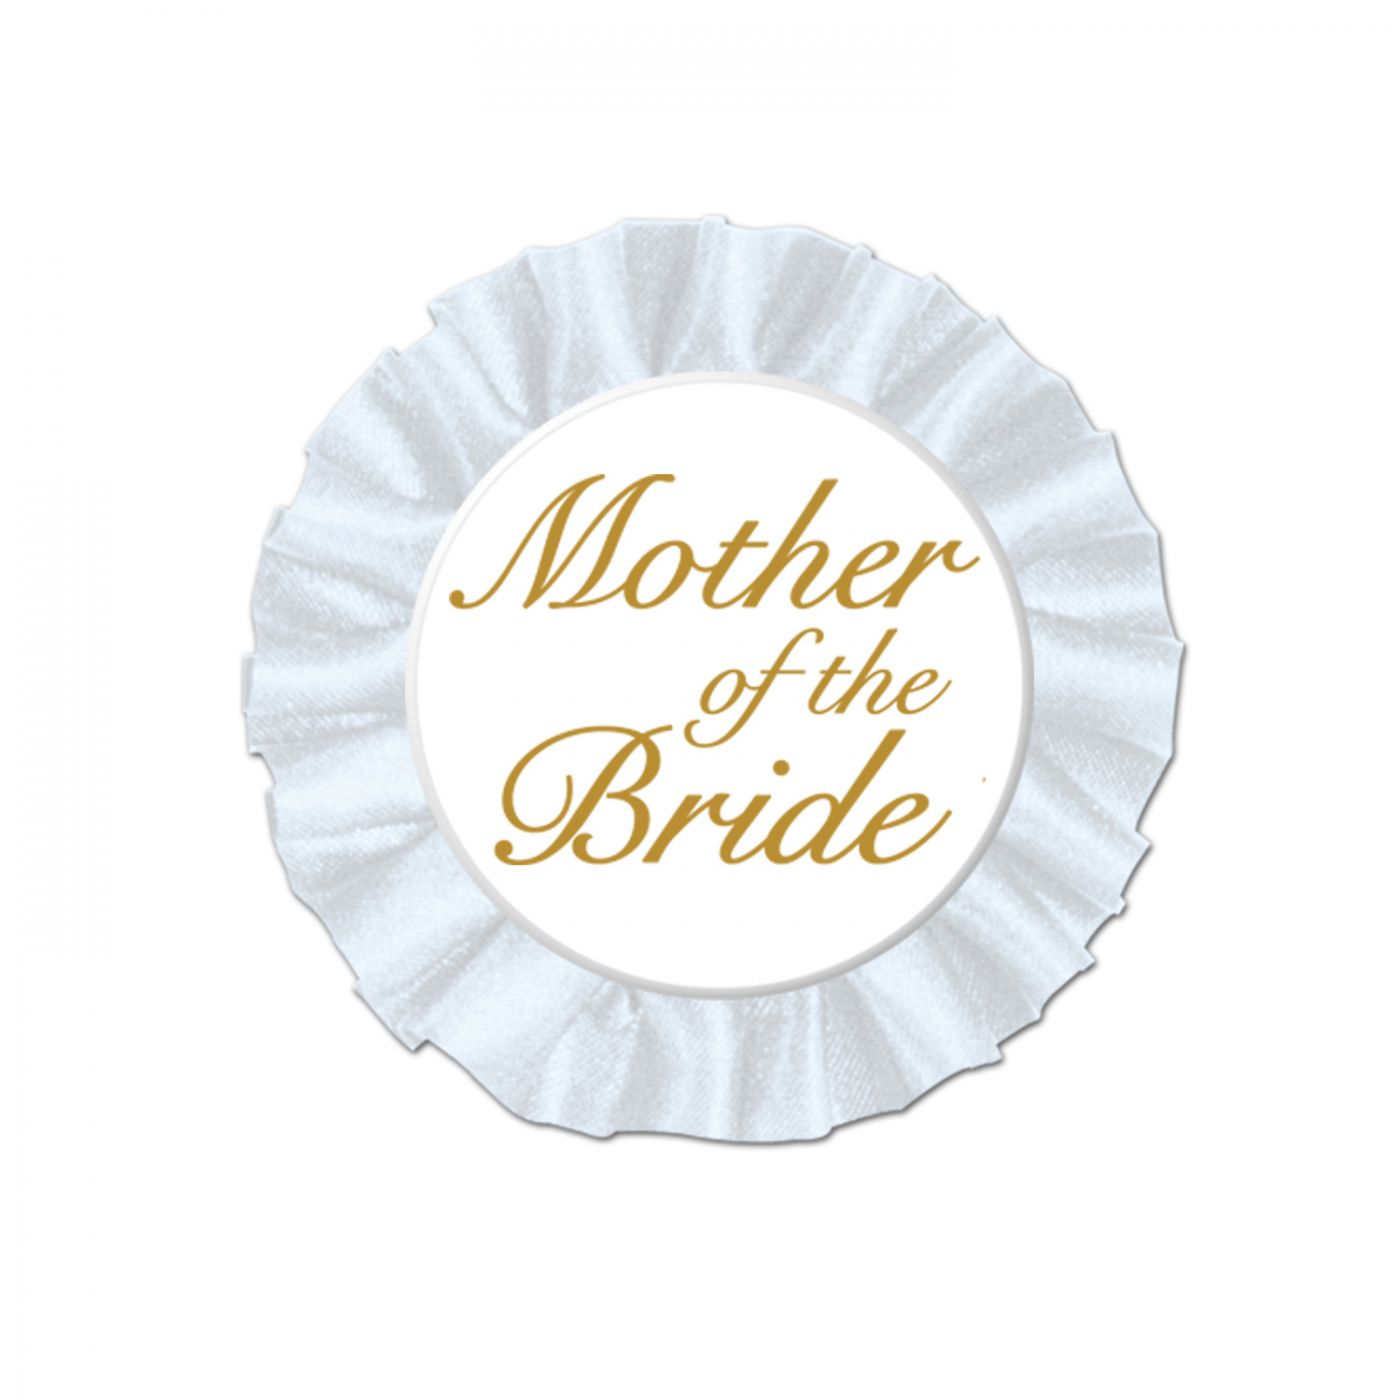 Mother Of The Bride Satin Button image